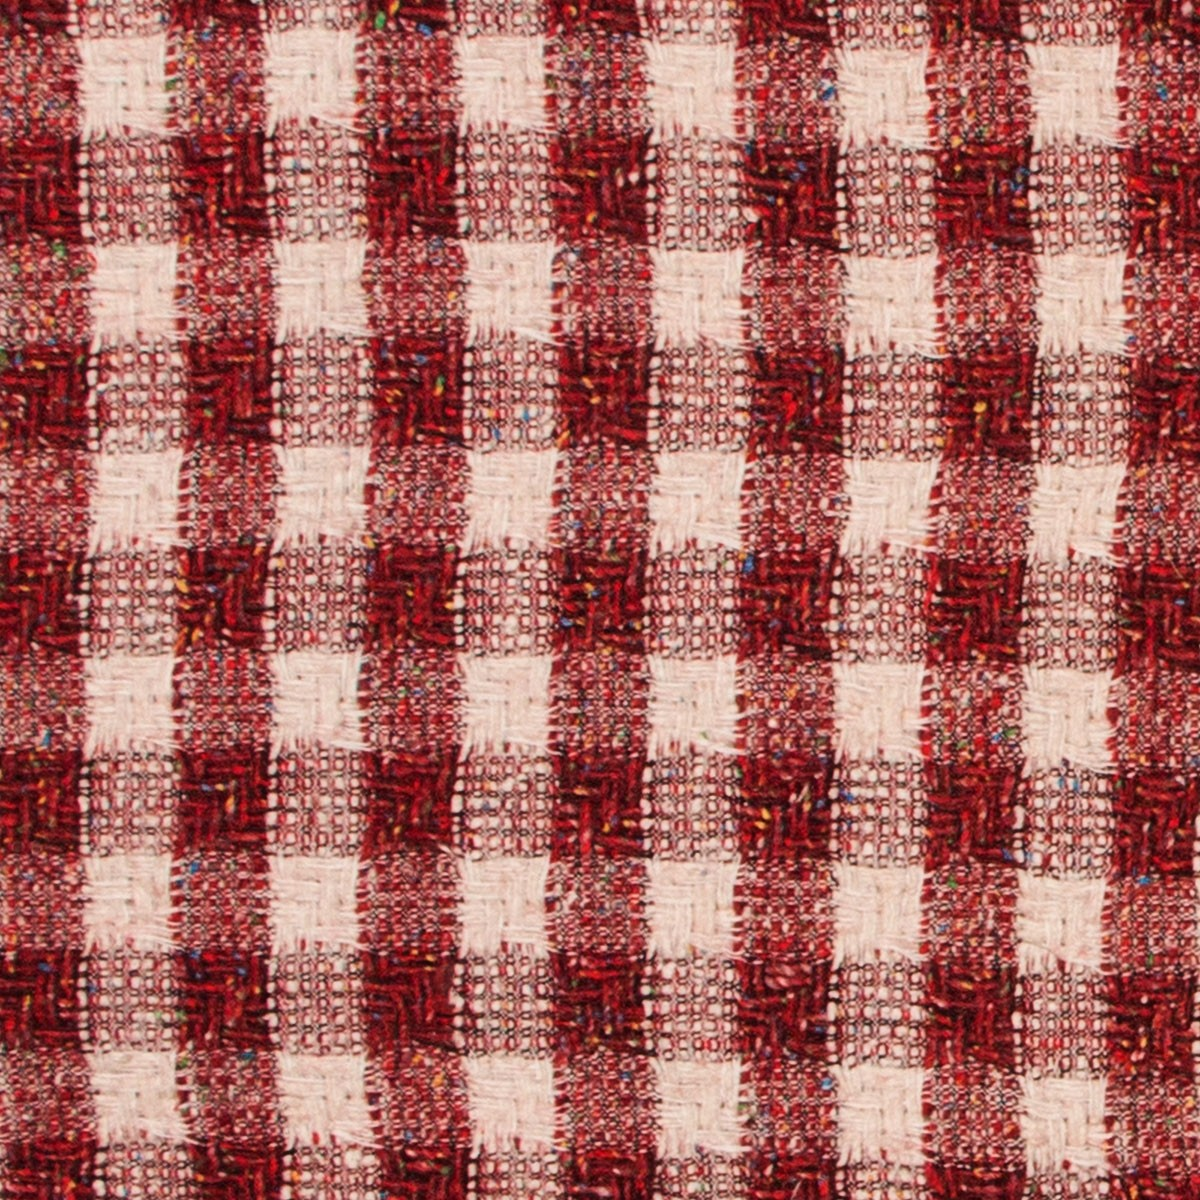 Rosso Square Jacketing Wool Fabric